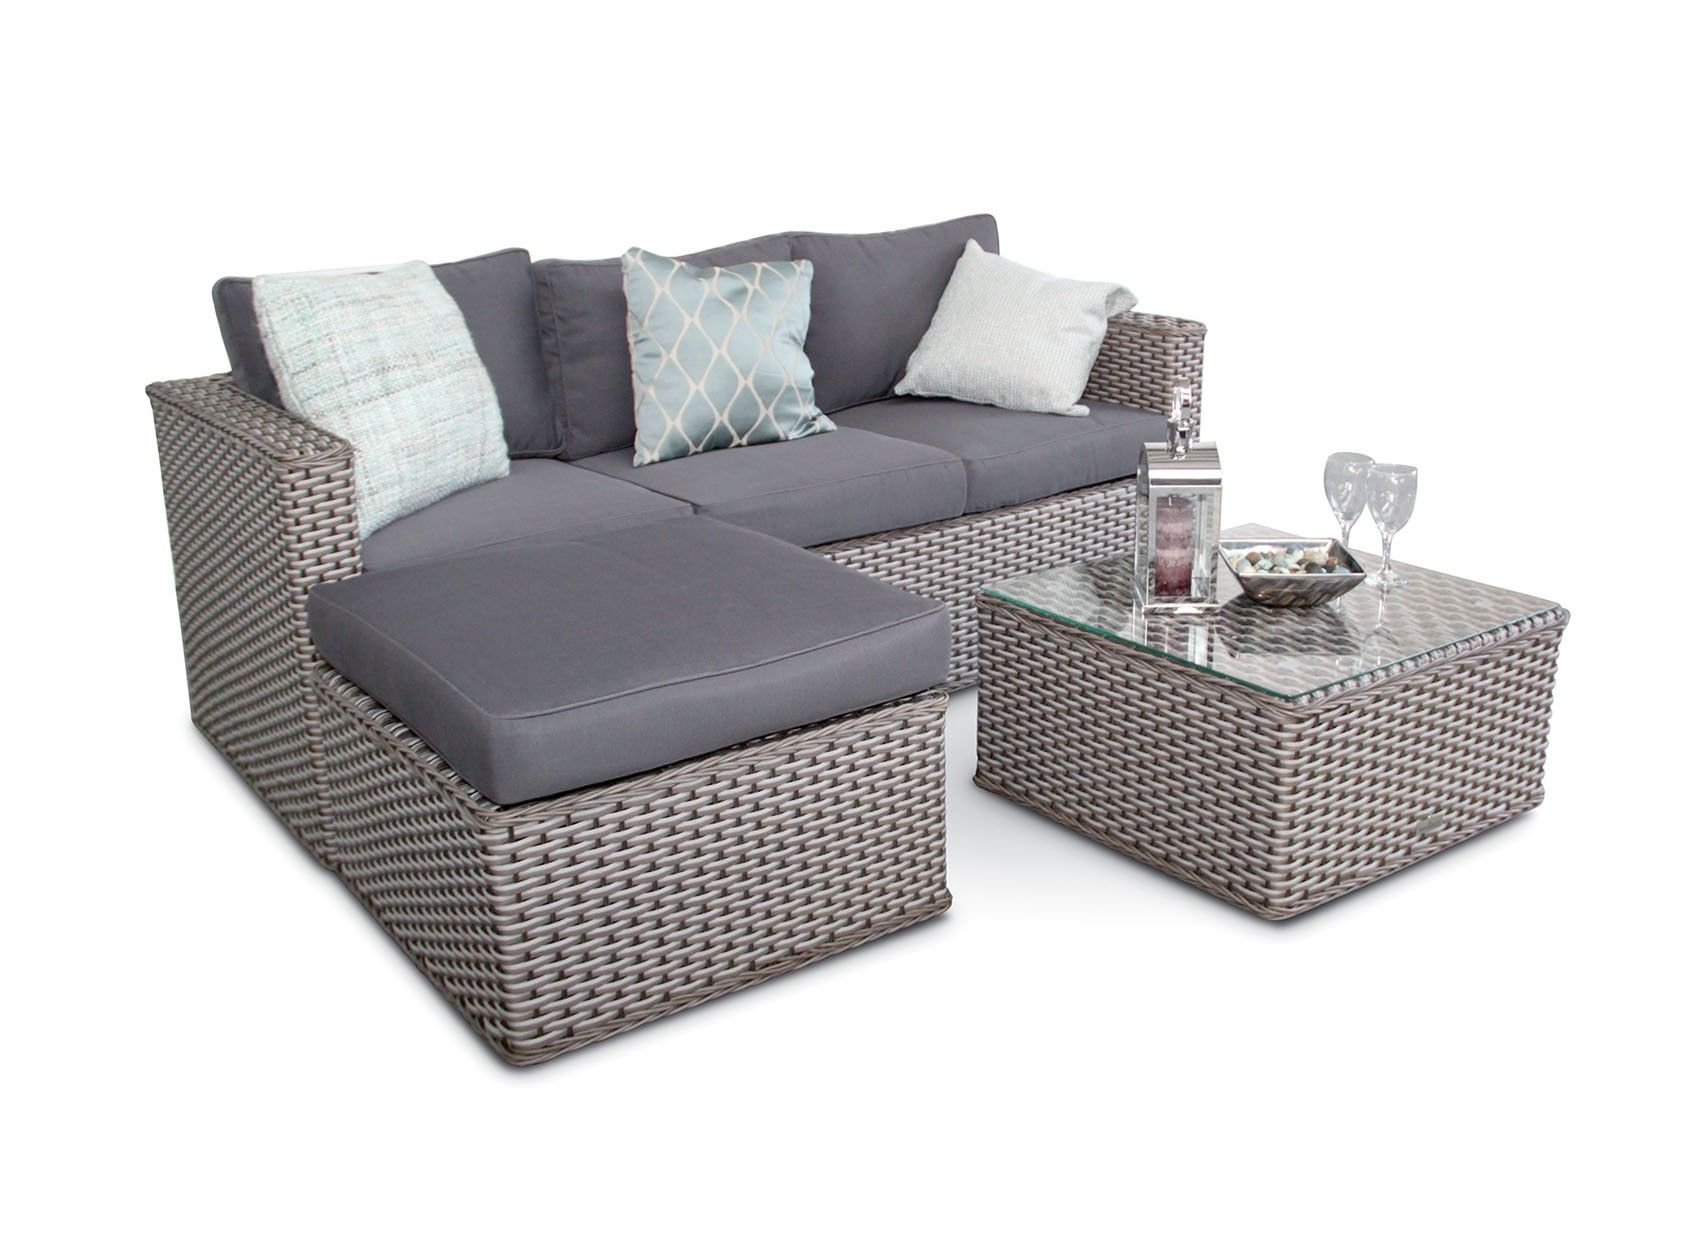 Sofa Rattan Bahamas Rattan 3 Seater Outdoor Sofa Set 5 Seater Whitewash